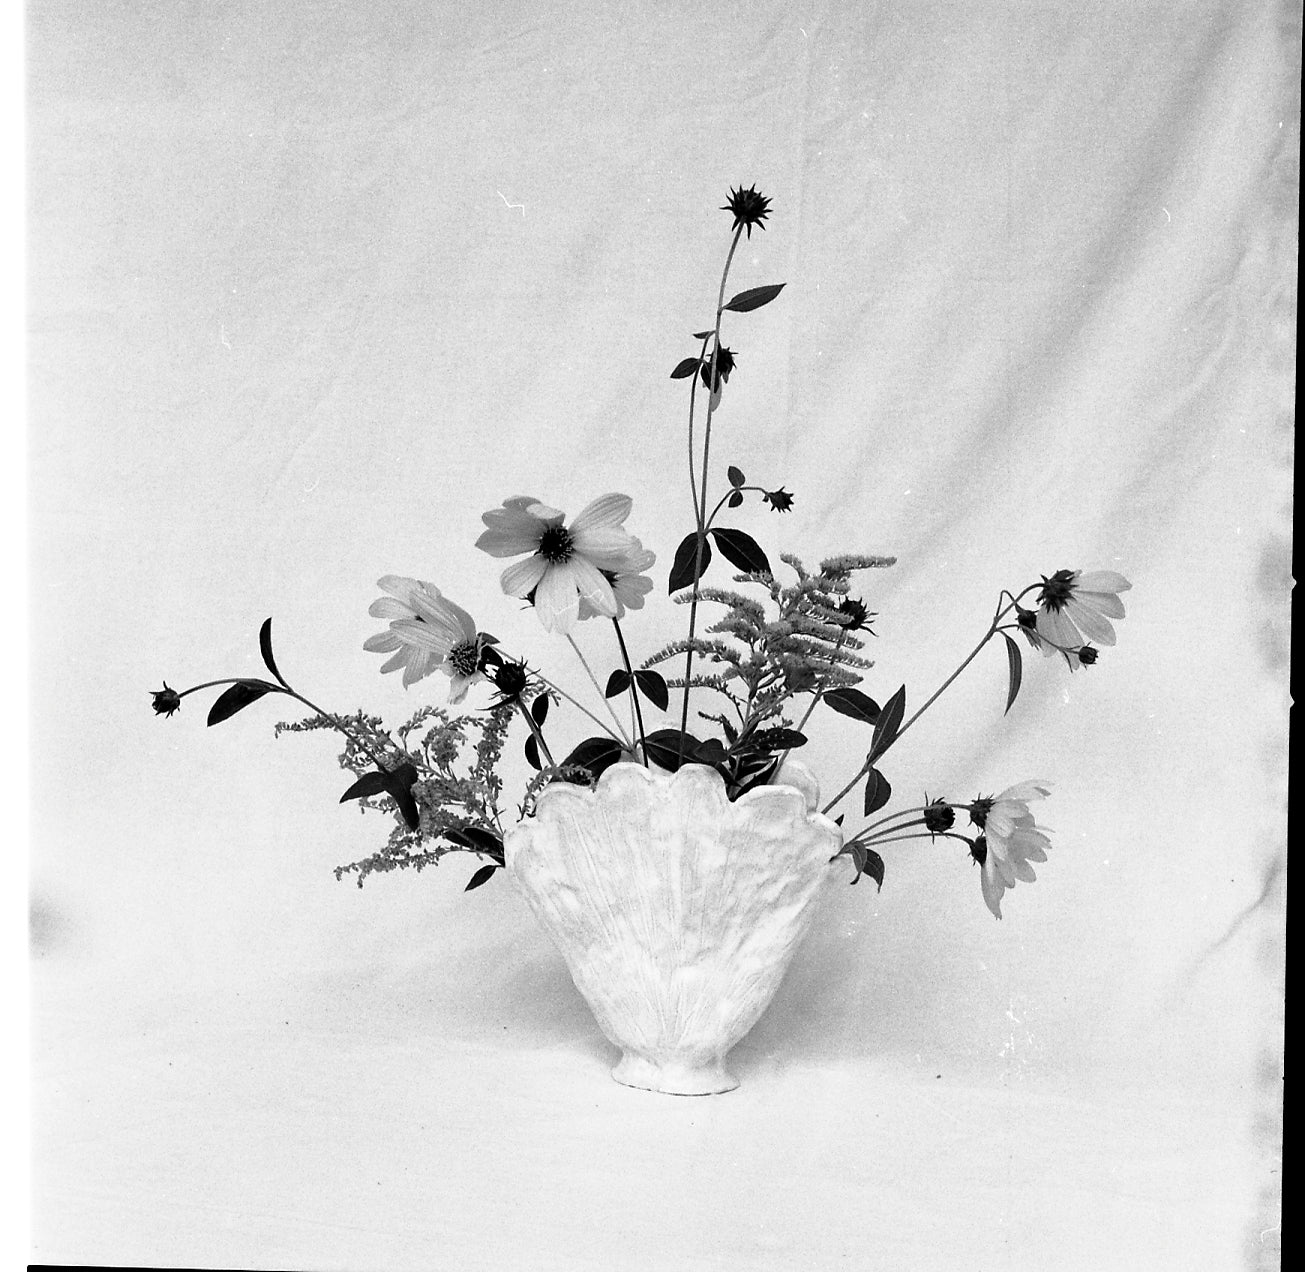 Black and white film photo of flowers in a white vase by Lottie Hampson.